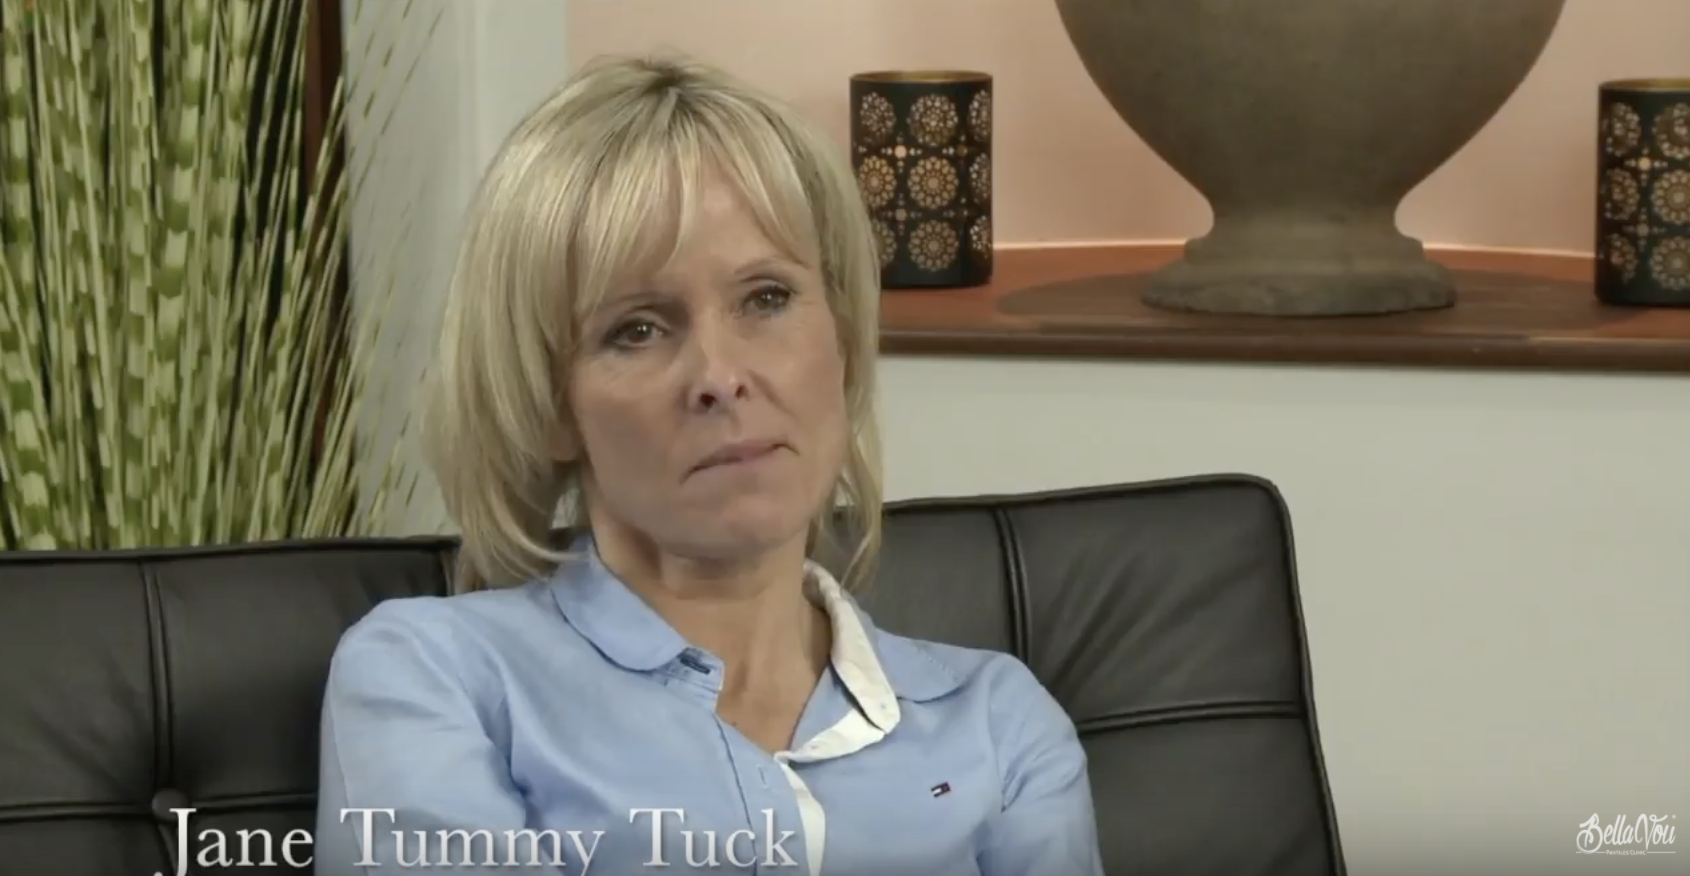 We talk to our patient Jane about her Tummy Tuck procedure